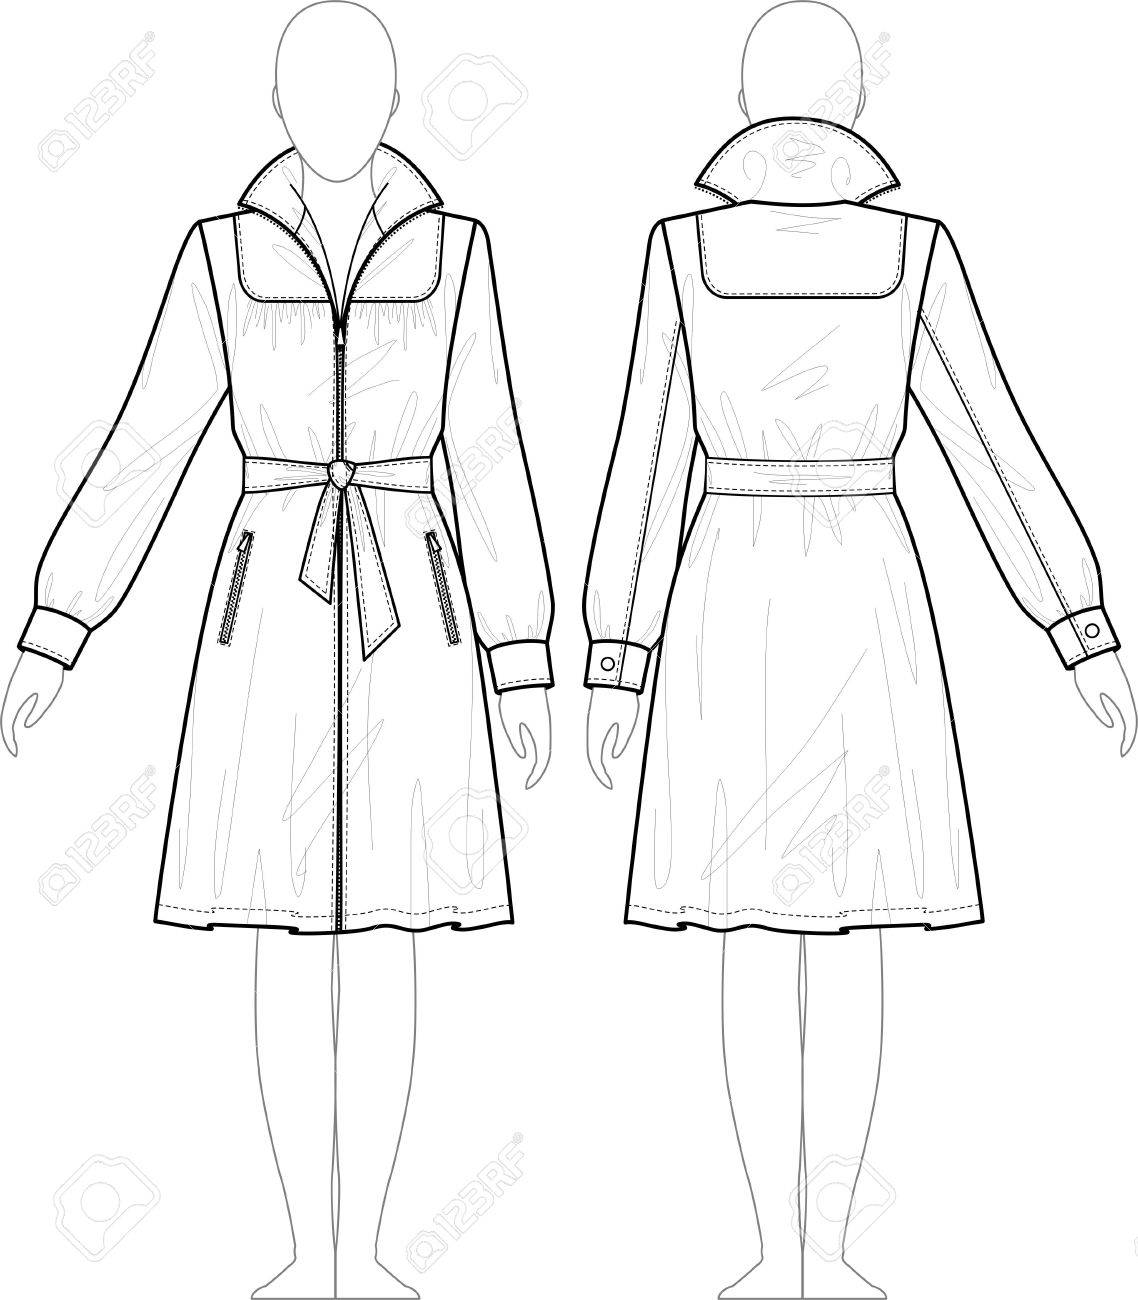 1138x1300 Raincoat Female With A Collar And Pockets Royalty Free Cliparts